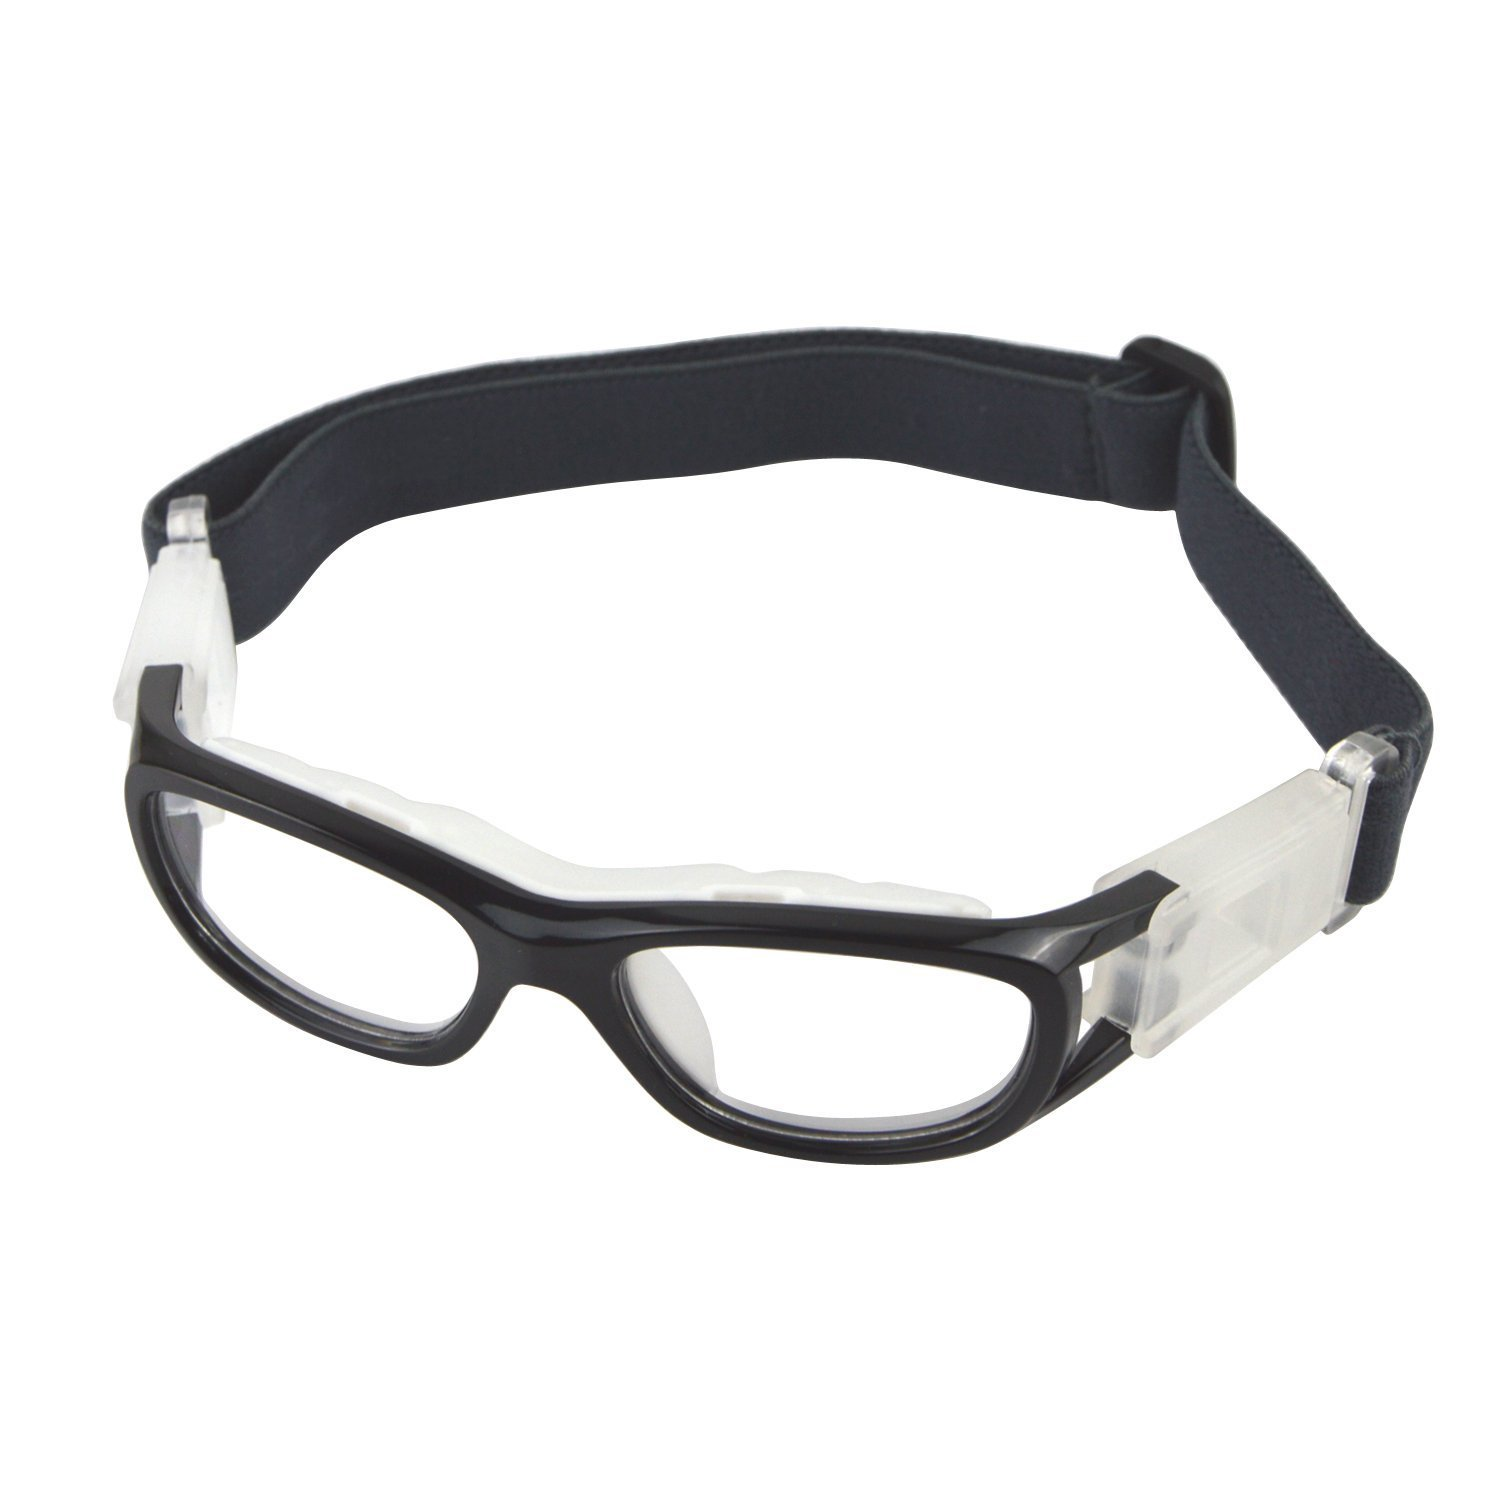 1487b887fdd4 Elemart(TM Unisex Kids Sport Glasses Anti-Fog Protective Safety Goggles Adjustable  Strap for Basketball Football Hockey Rugby Baseball Soccer Volleyball and  ...